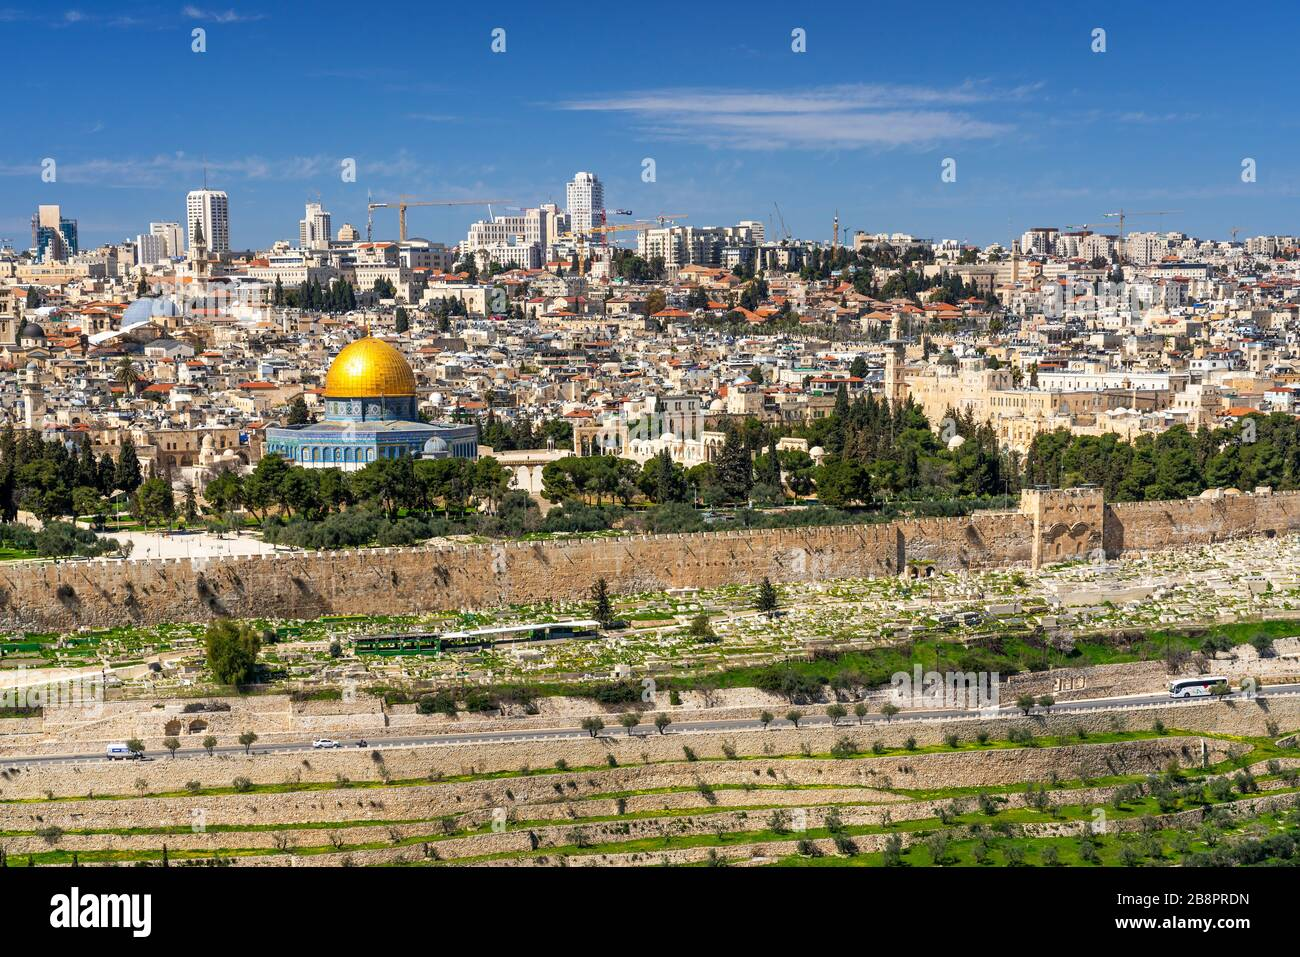 The city skyline from the Mount of Olives, Jerusalem, Israel, Middle East. Stock Photo